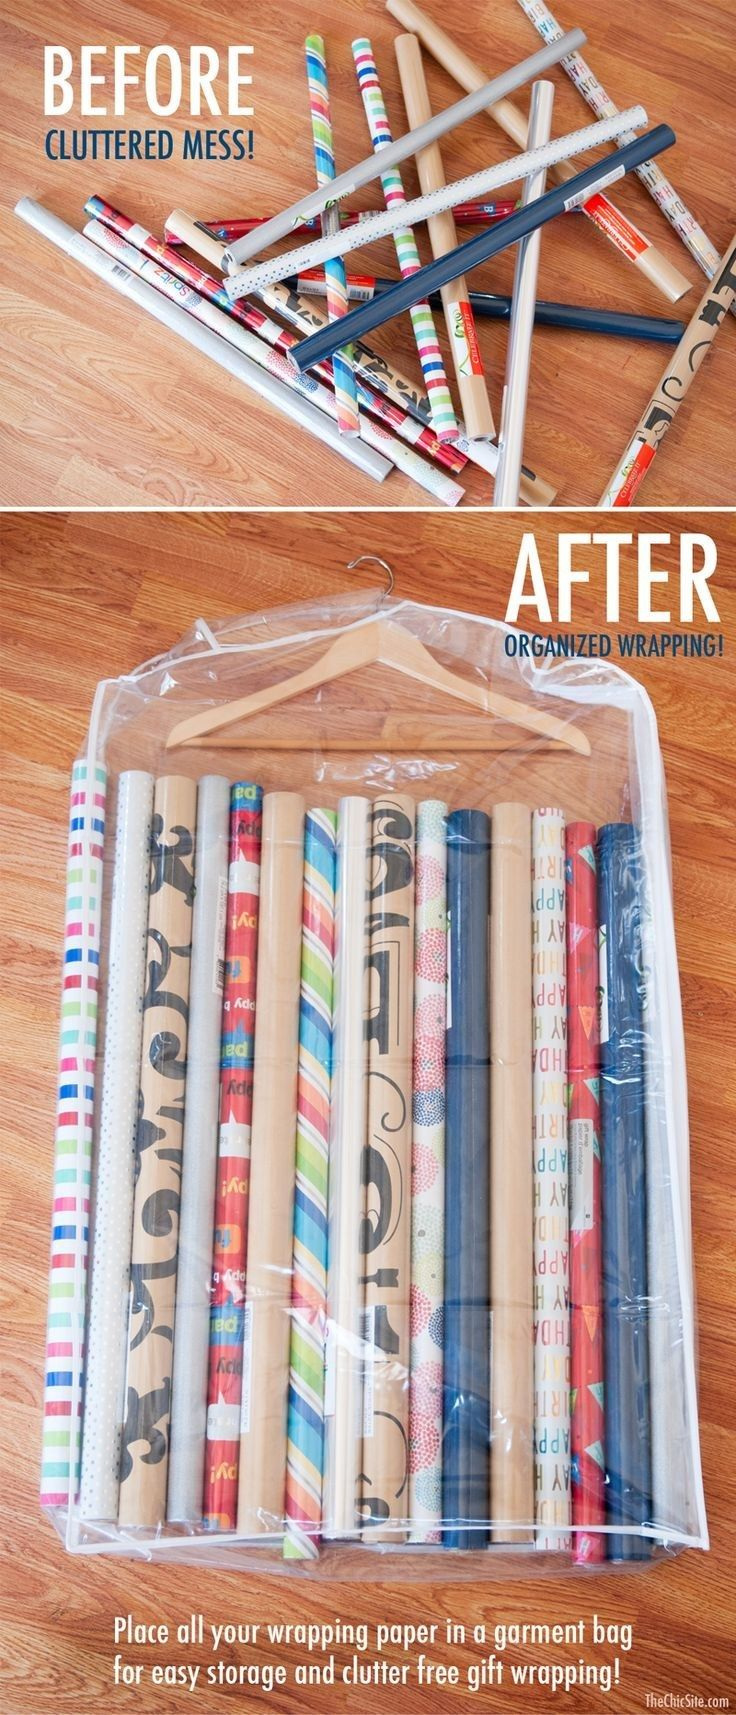 Free your space, and the rest will follow. .A garment bag will keep your wrapping paper neat through the chaotic holidays